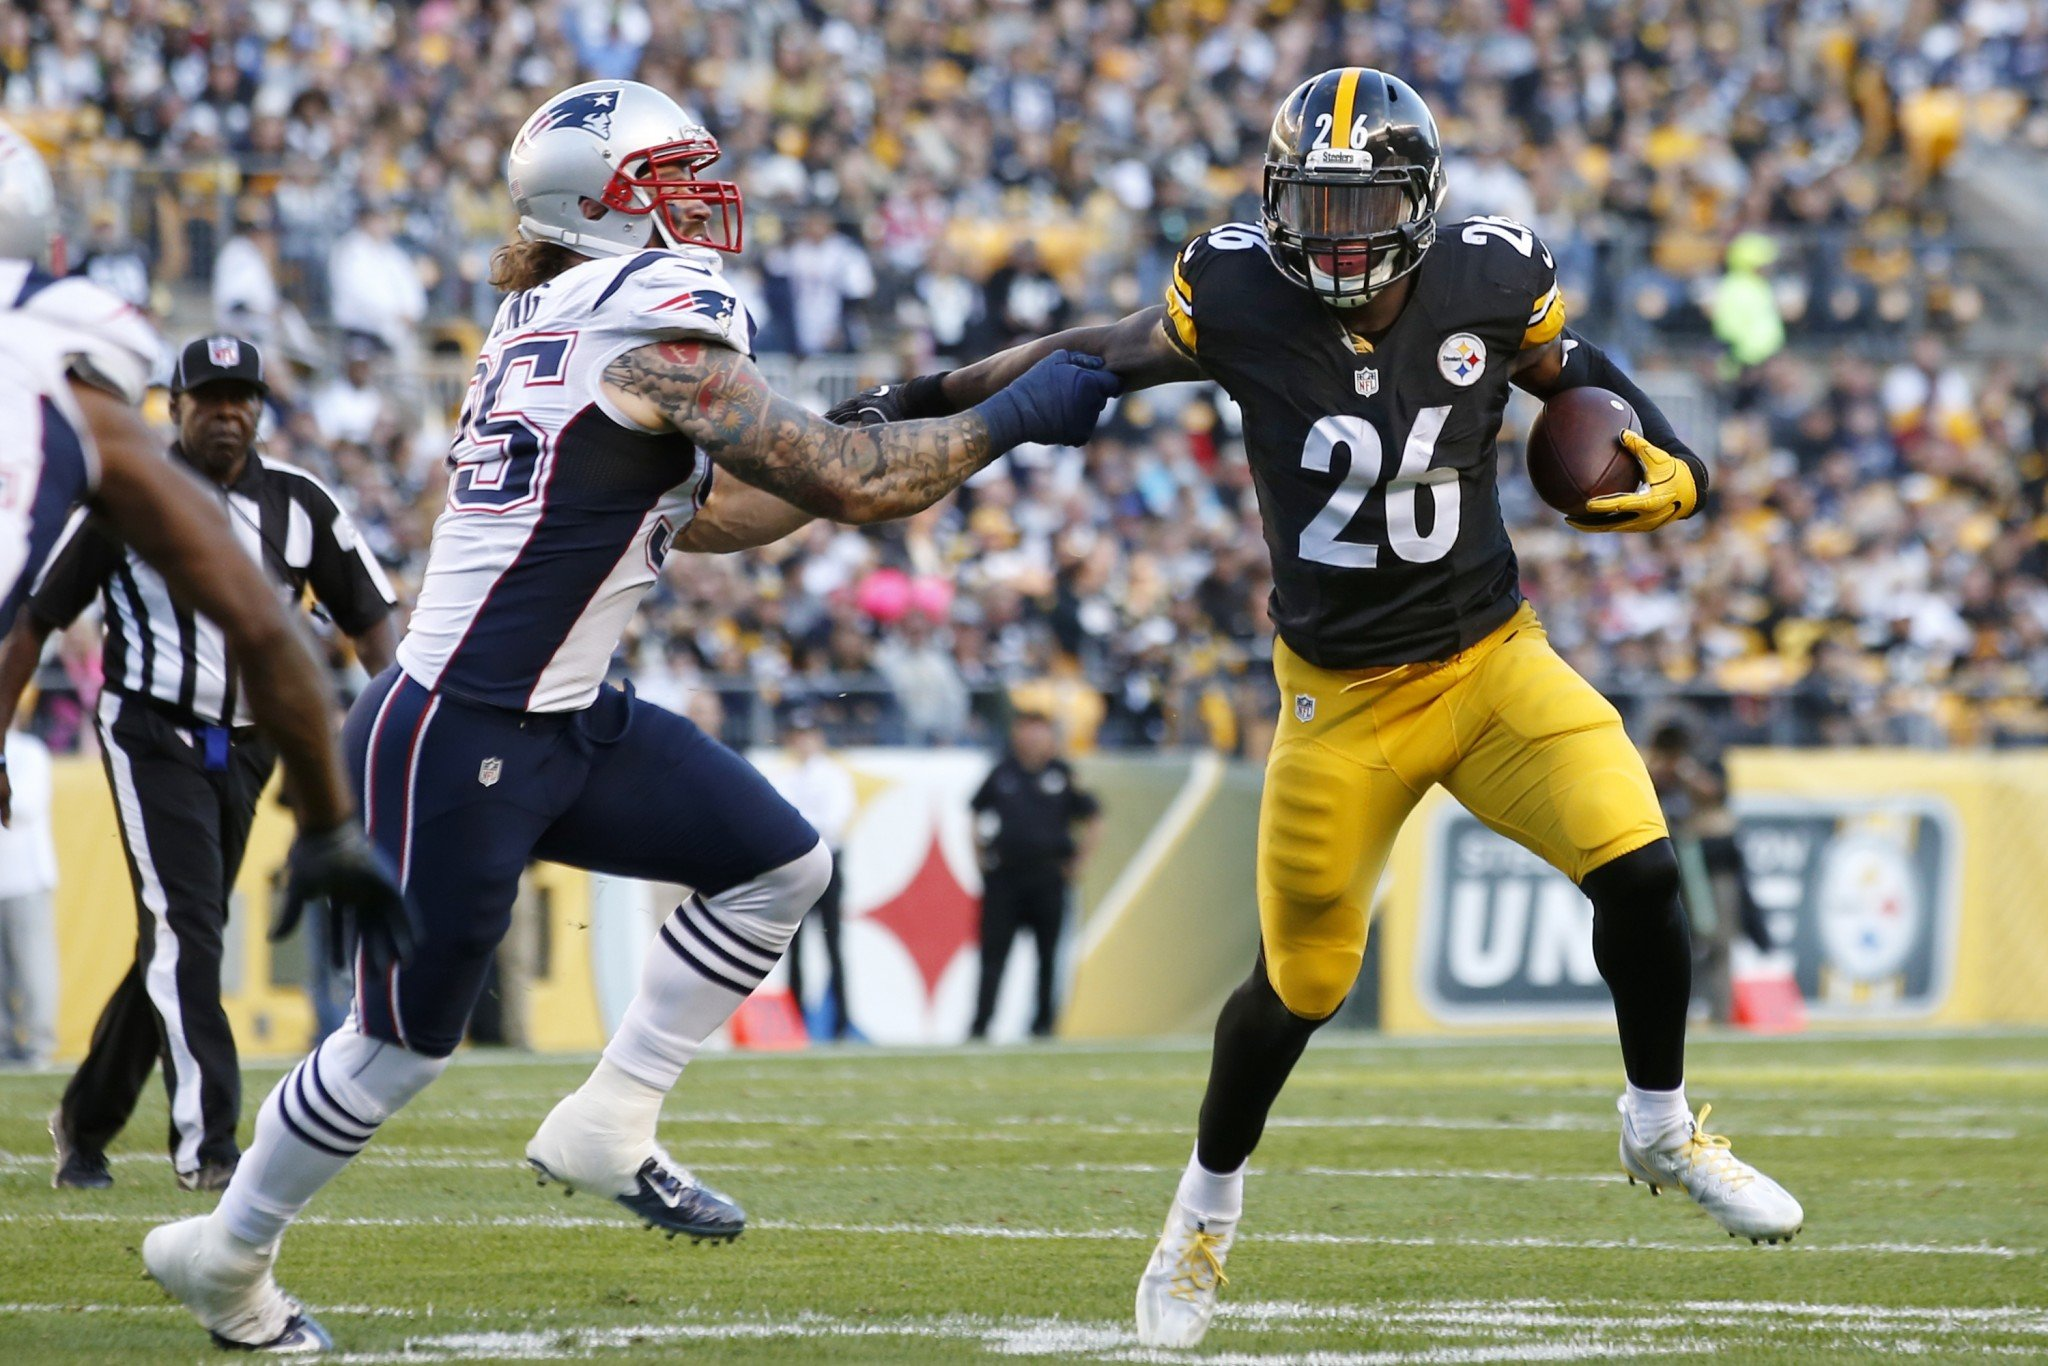 Keeping Le'Veon Bell in check will be job No. 1 for the New England defense. (AP)